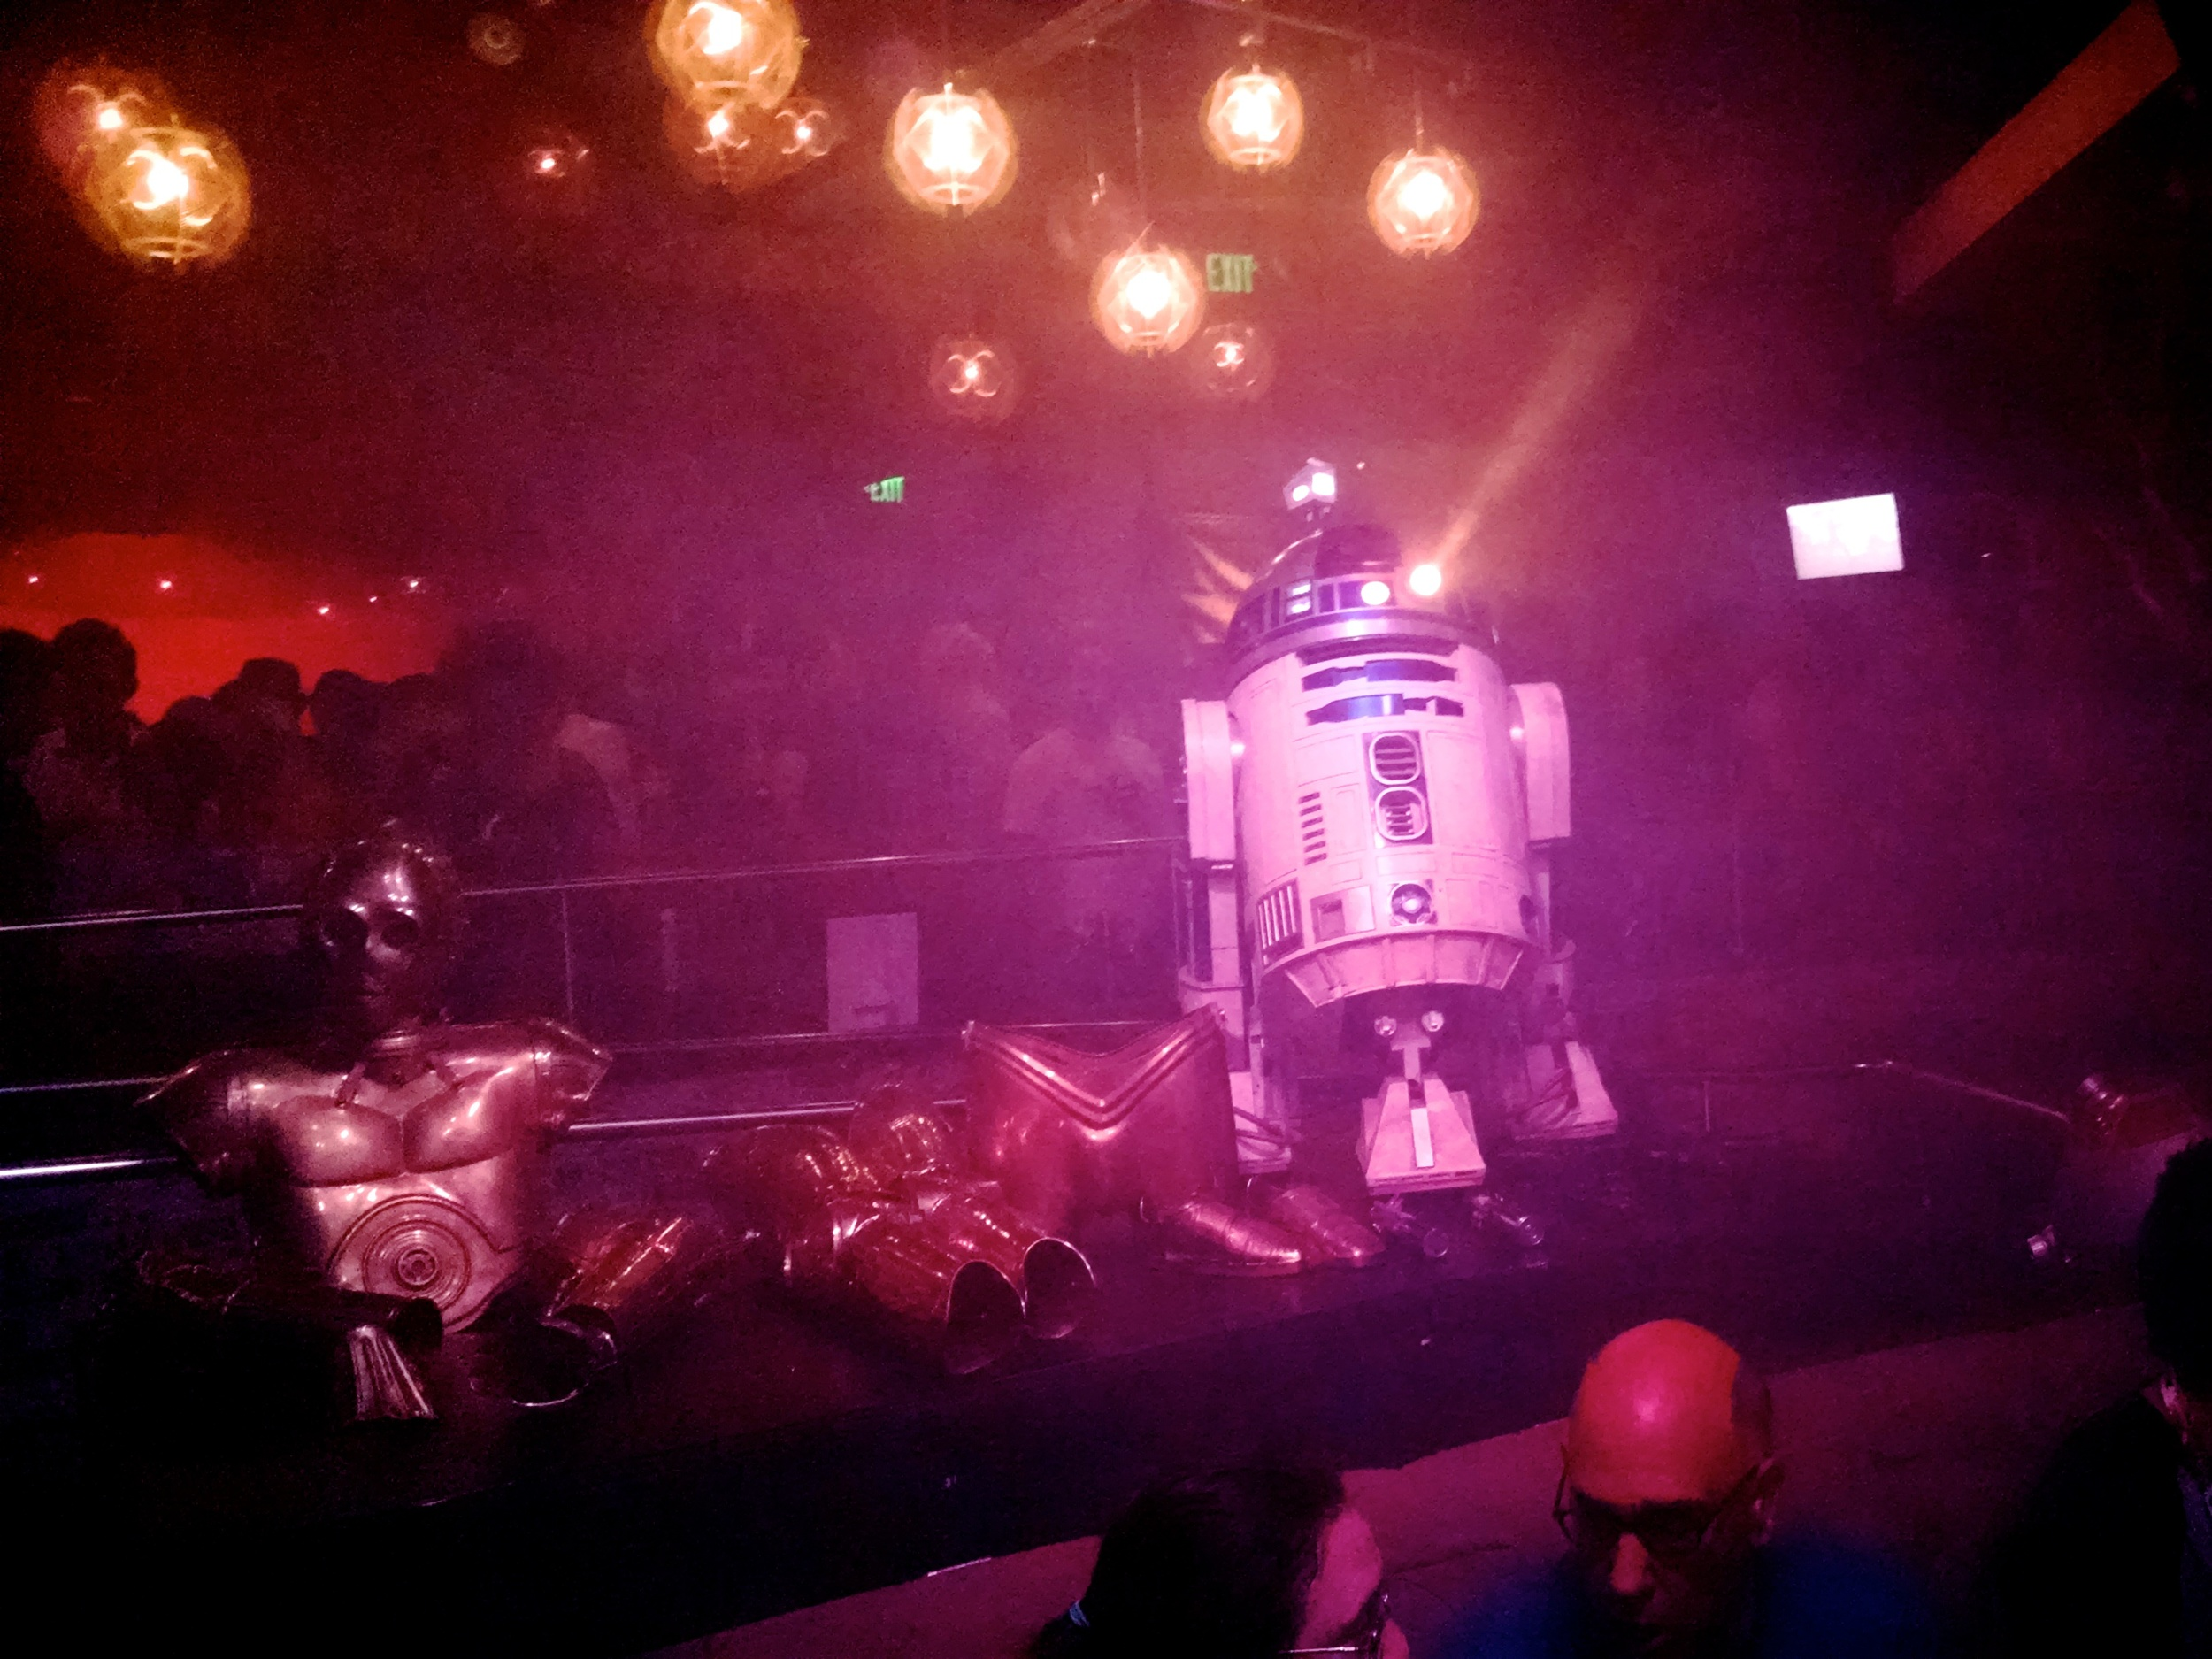 The droids we are looking for!